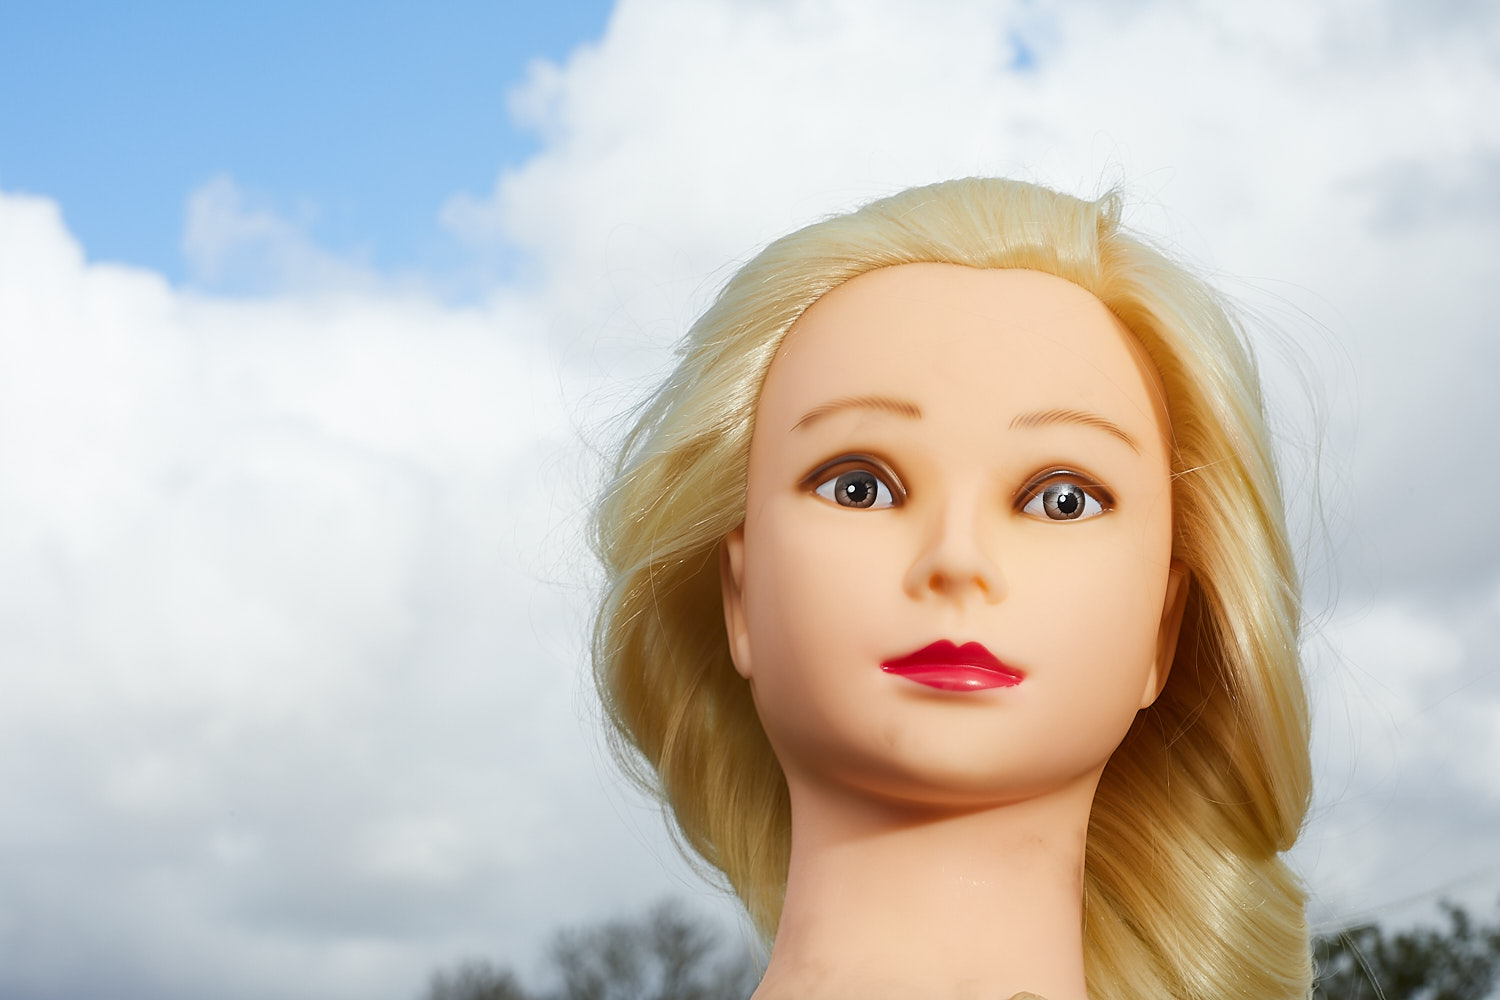 A photo off a mannequin used to illustrate getting started in off-camera flash. The doll is shot against a cloudy sky.